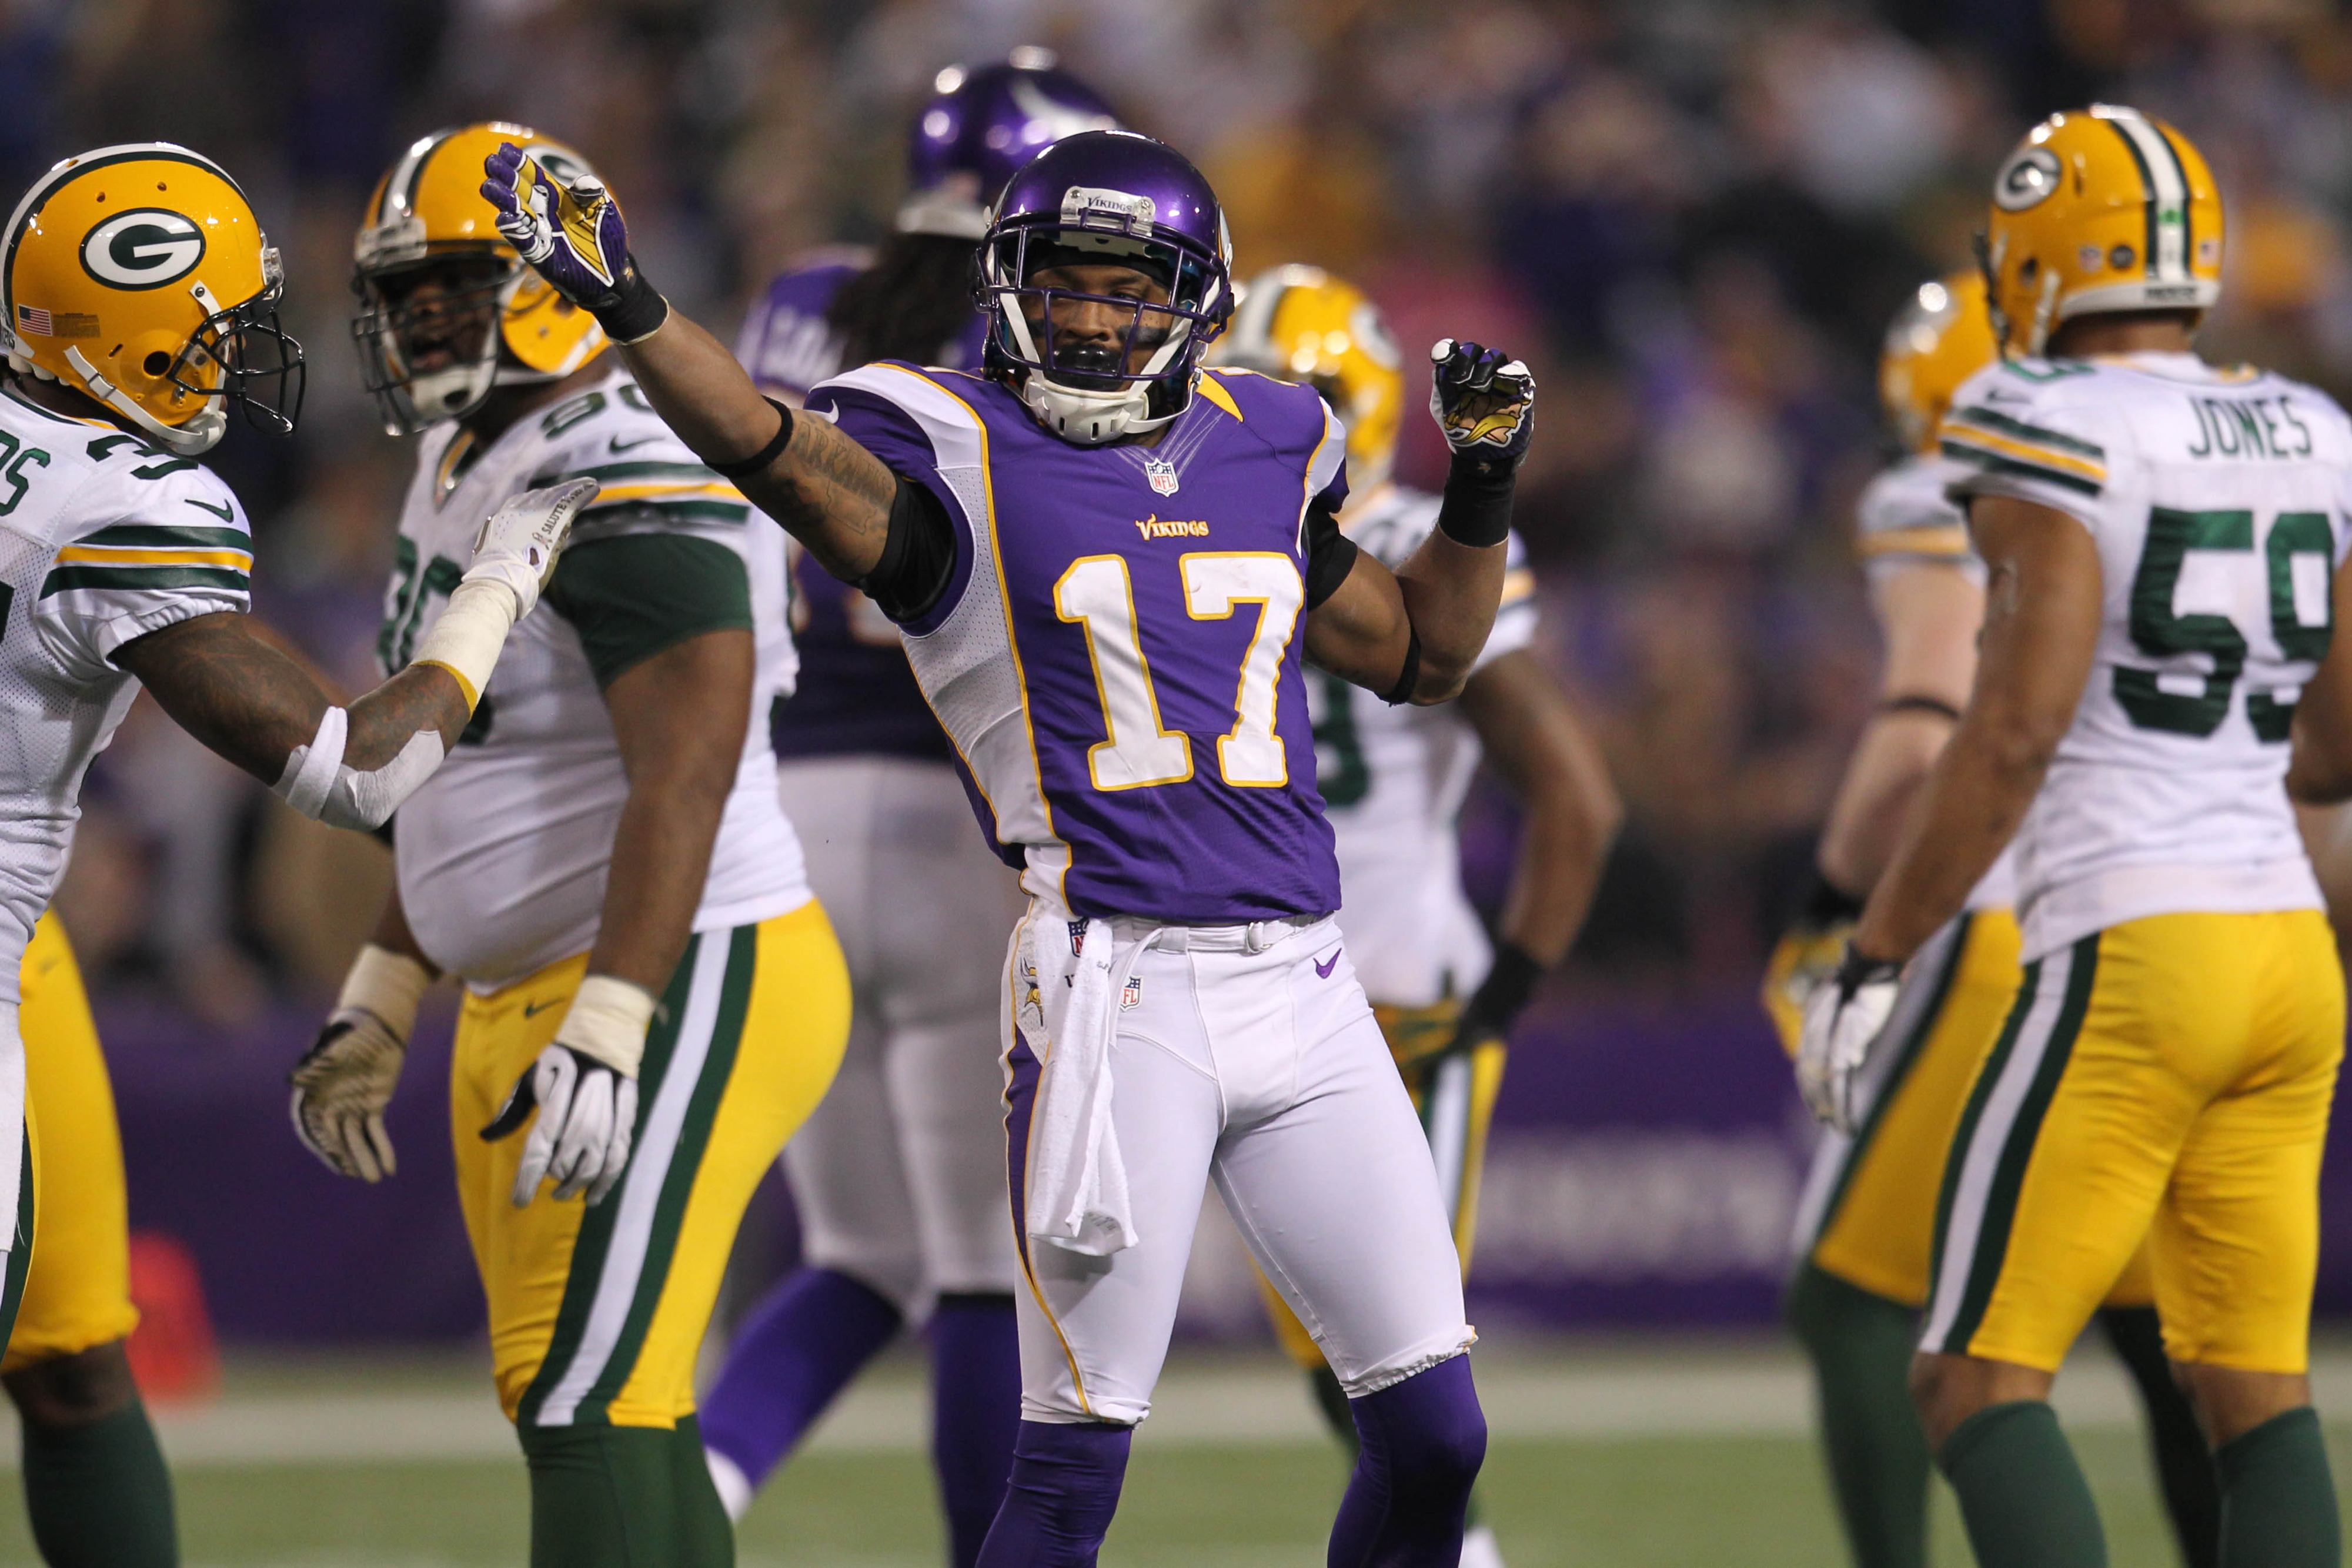 Jarius Wright is out with a concussion, suffered Friday night in Buffalo.